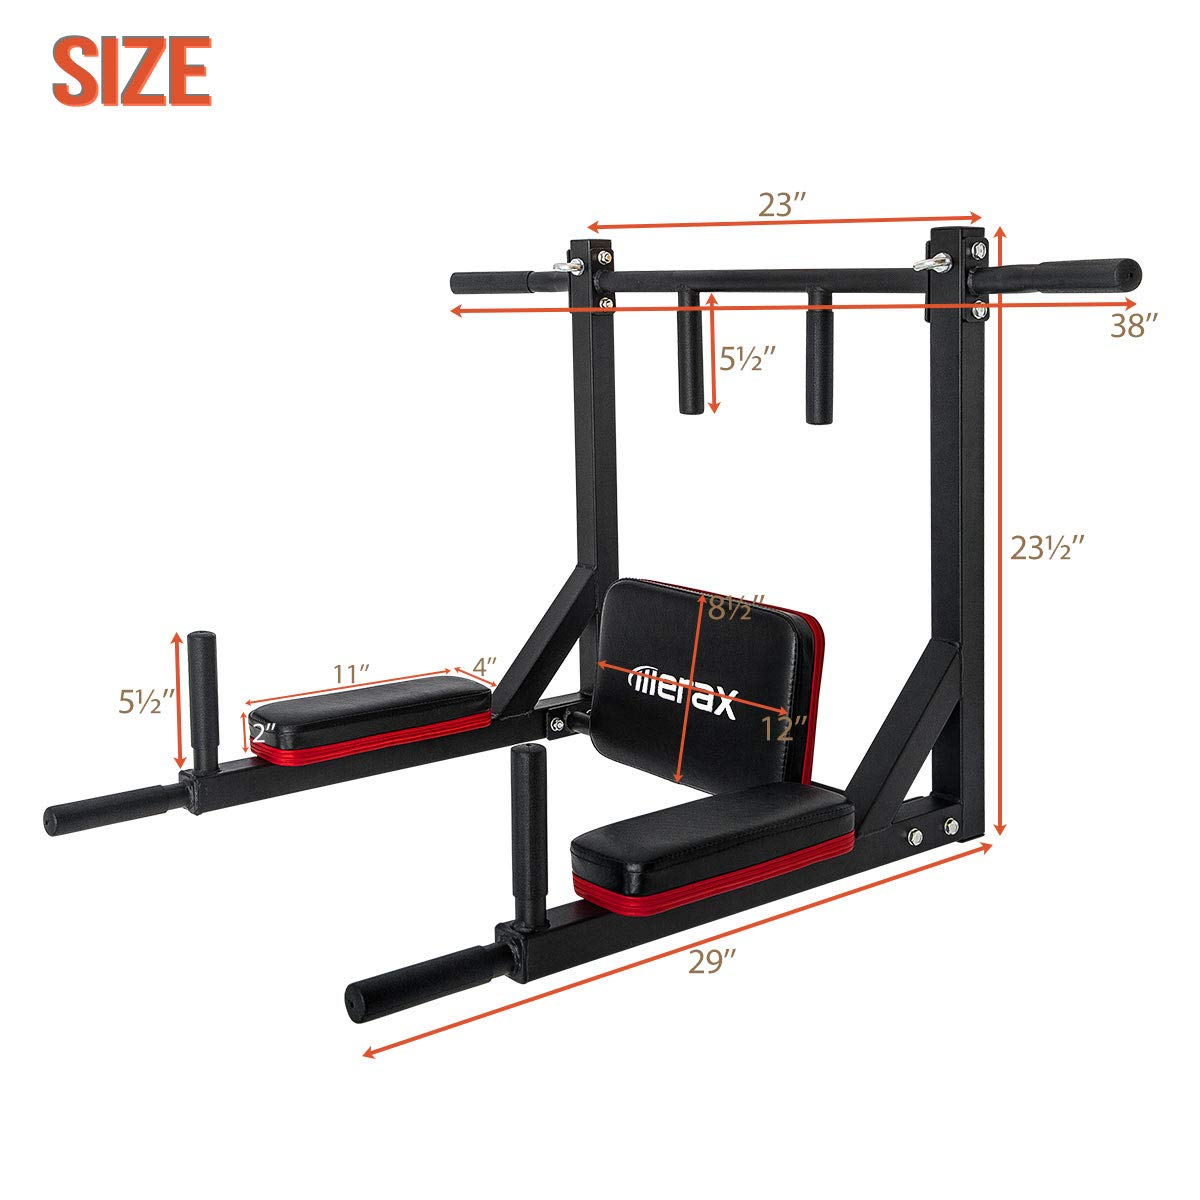 Merax Wall Mounted Pull-Up Bar - Multi-Grip Chin-Up Bar Dip Stand Power Tower Set for Home Gym Strength Training Equipment [Supports 440LBS] (Black & Red) by Merax (Image #7)